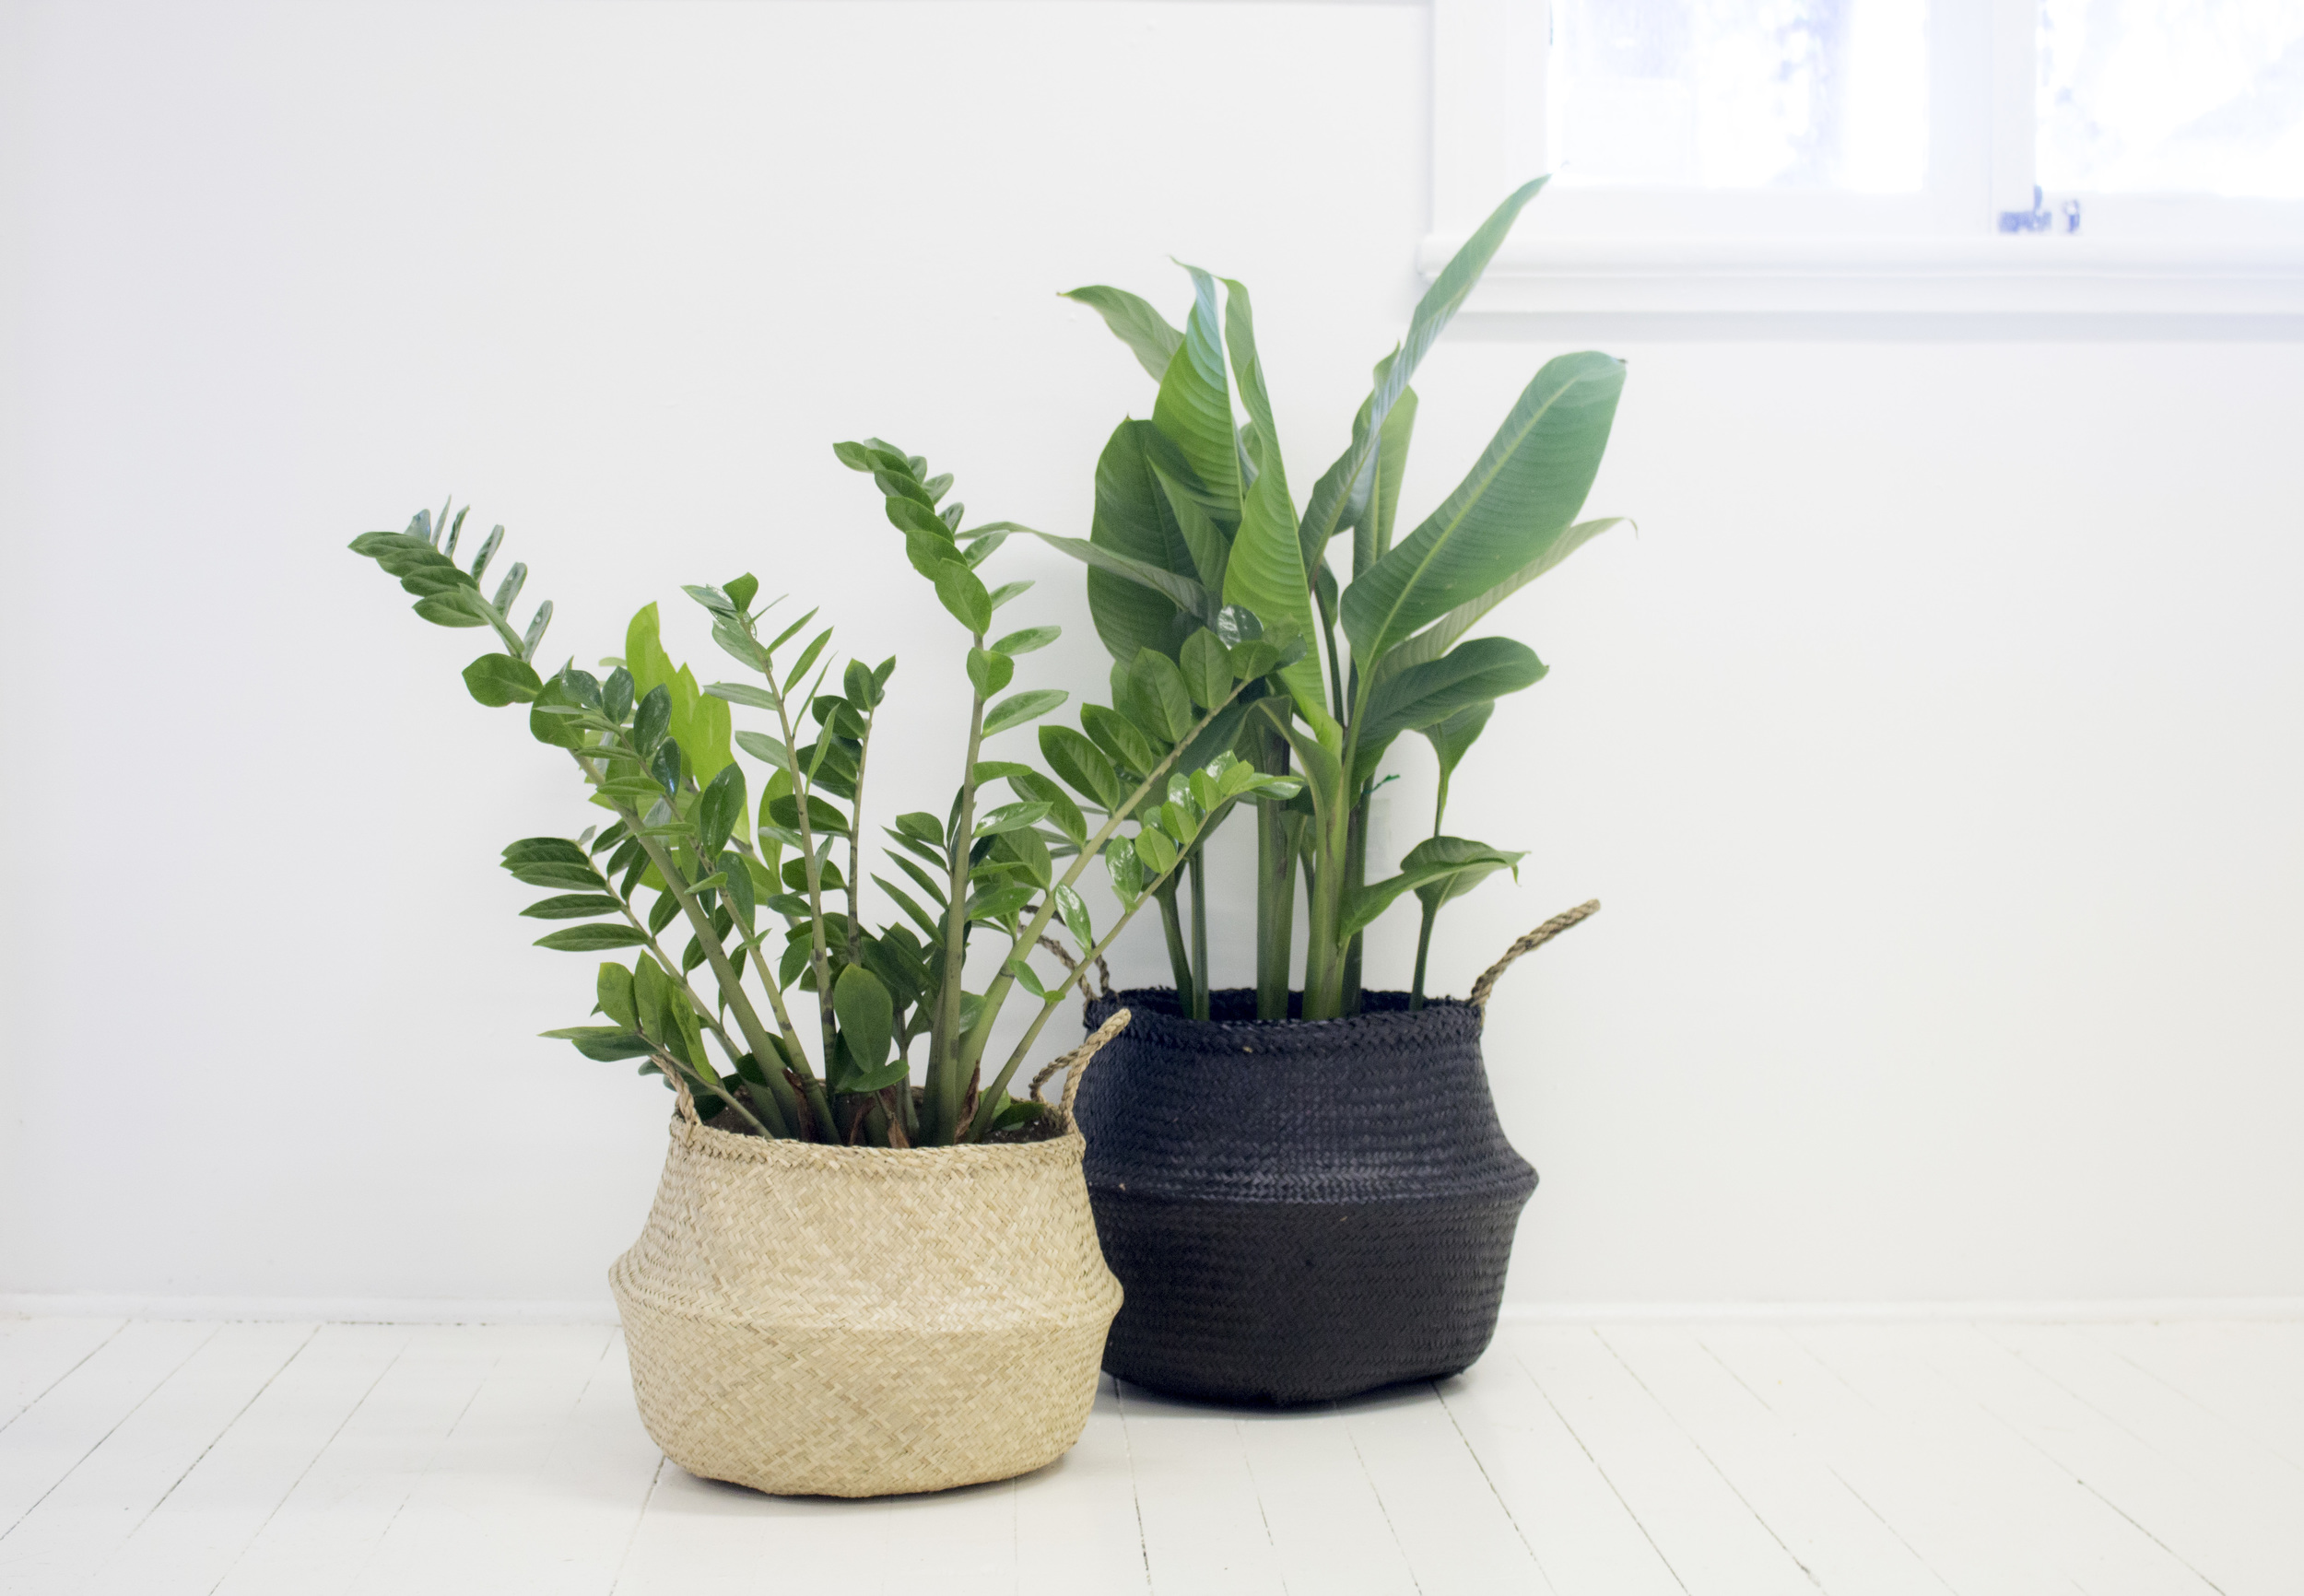 Product Photography & Styling Seagrass belly Baskets -  Bayko Homewares